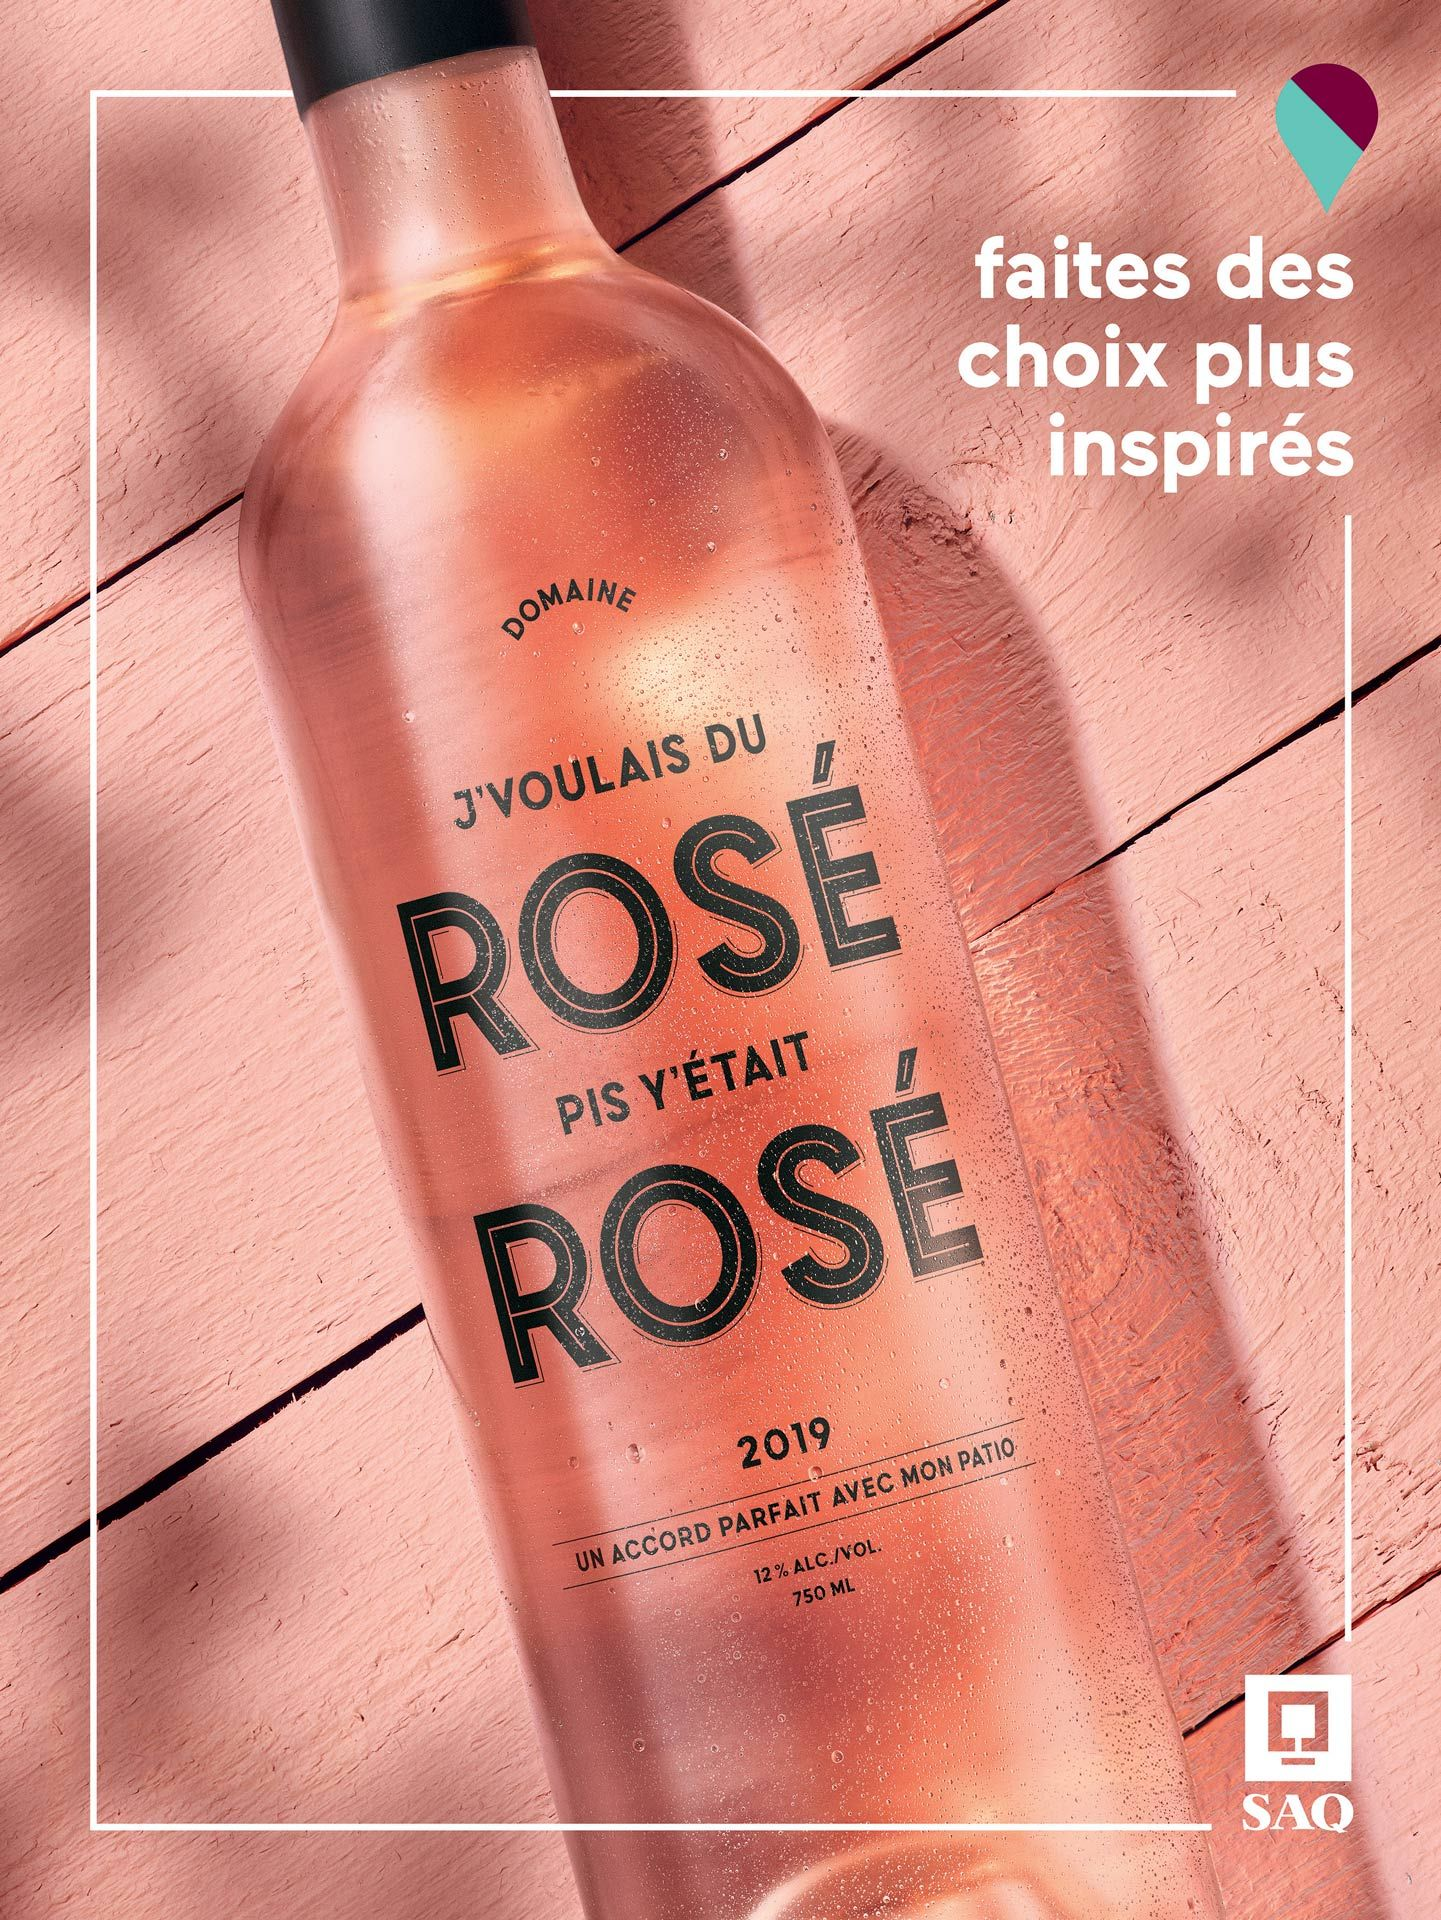 rosé bottle on pink table photographed by Mathieu Levesque for the SAQ Make Inspired Choices campaign